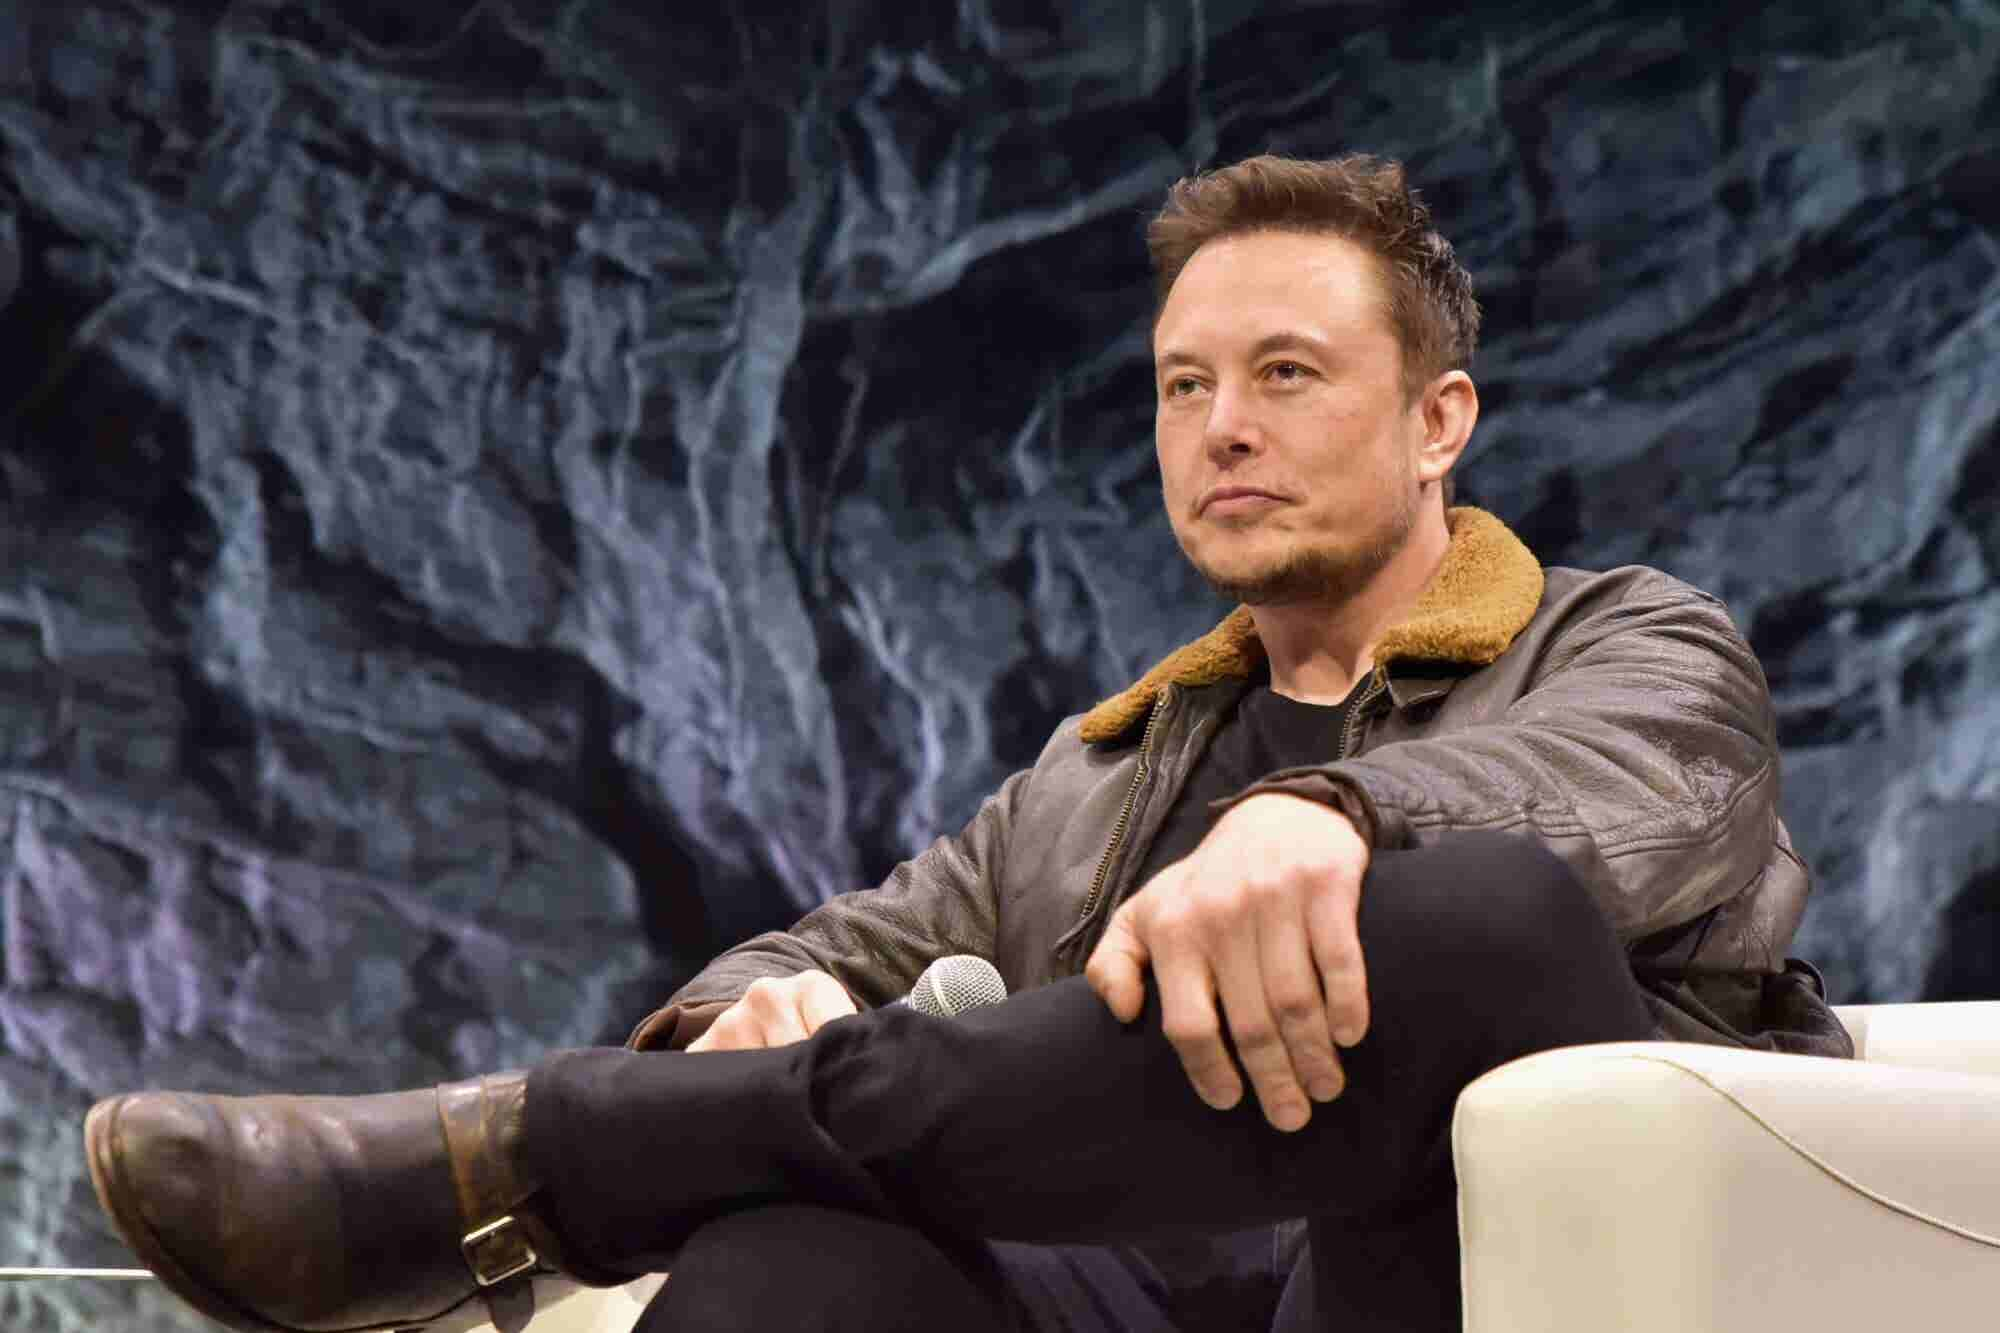 We Tried to Calculate How Much an Hour of Elon Musk's Time Is Worth. Here's What We Came Up With.